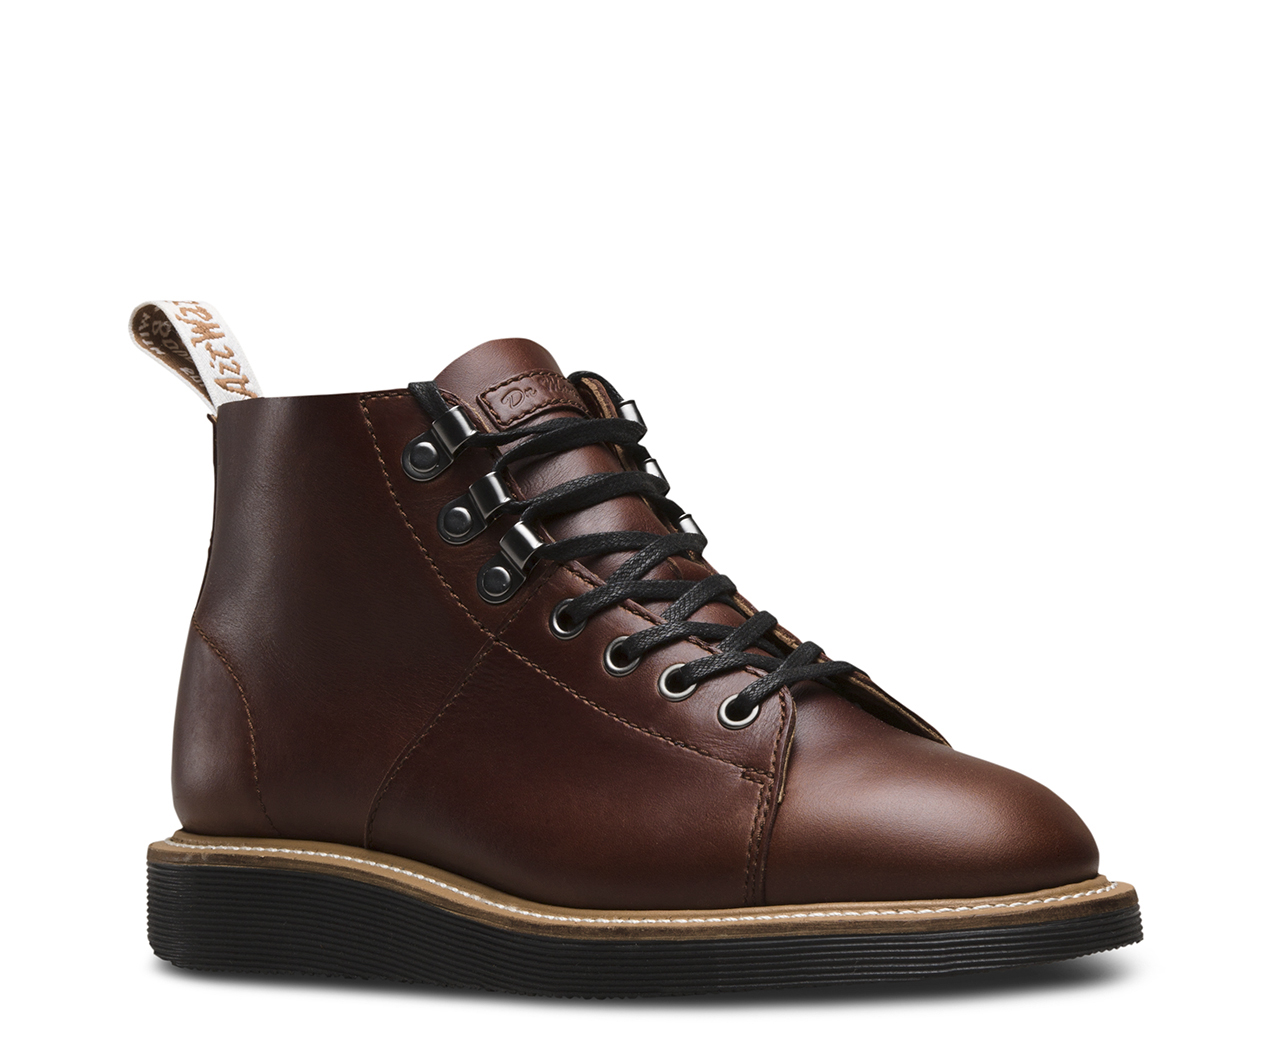 Dr. Martens Lesley Chukka Boot